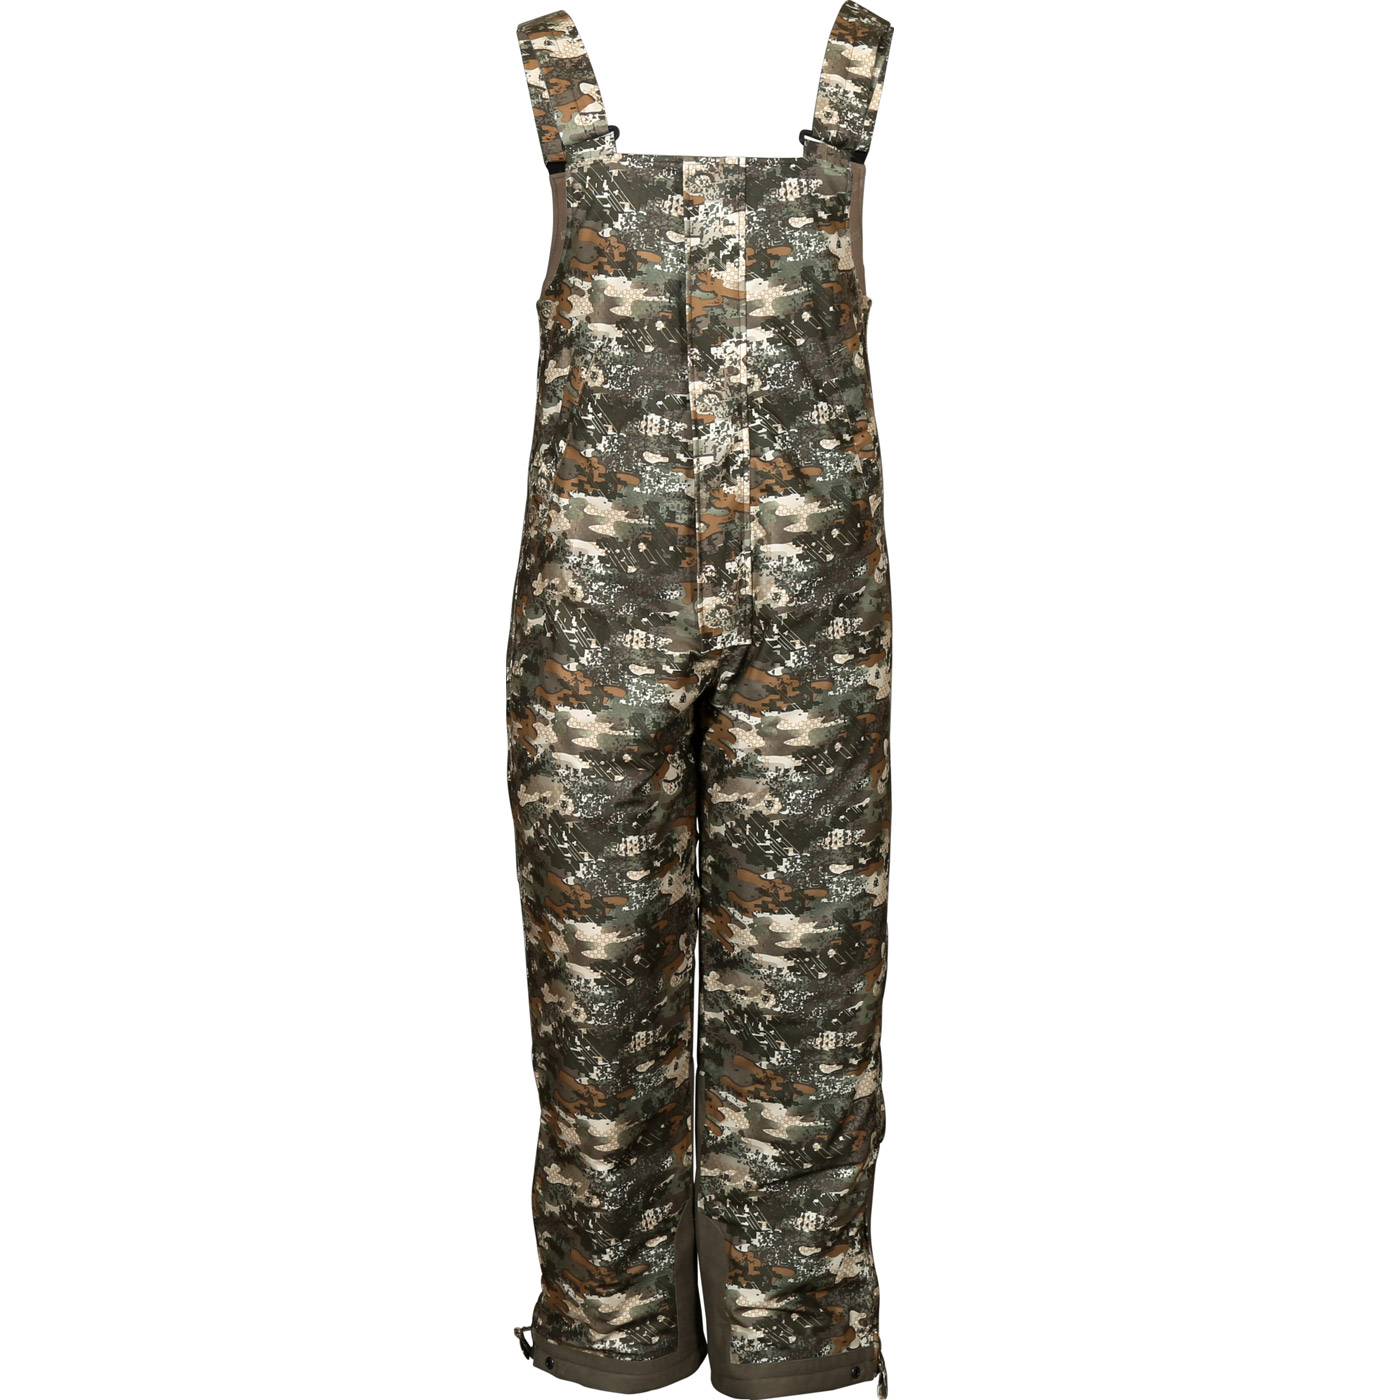 dade9663faf23 Rocky ProHunter Waterproof Insulated Bibs, , large. Insulated waterproof  camouflage ...